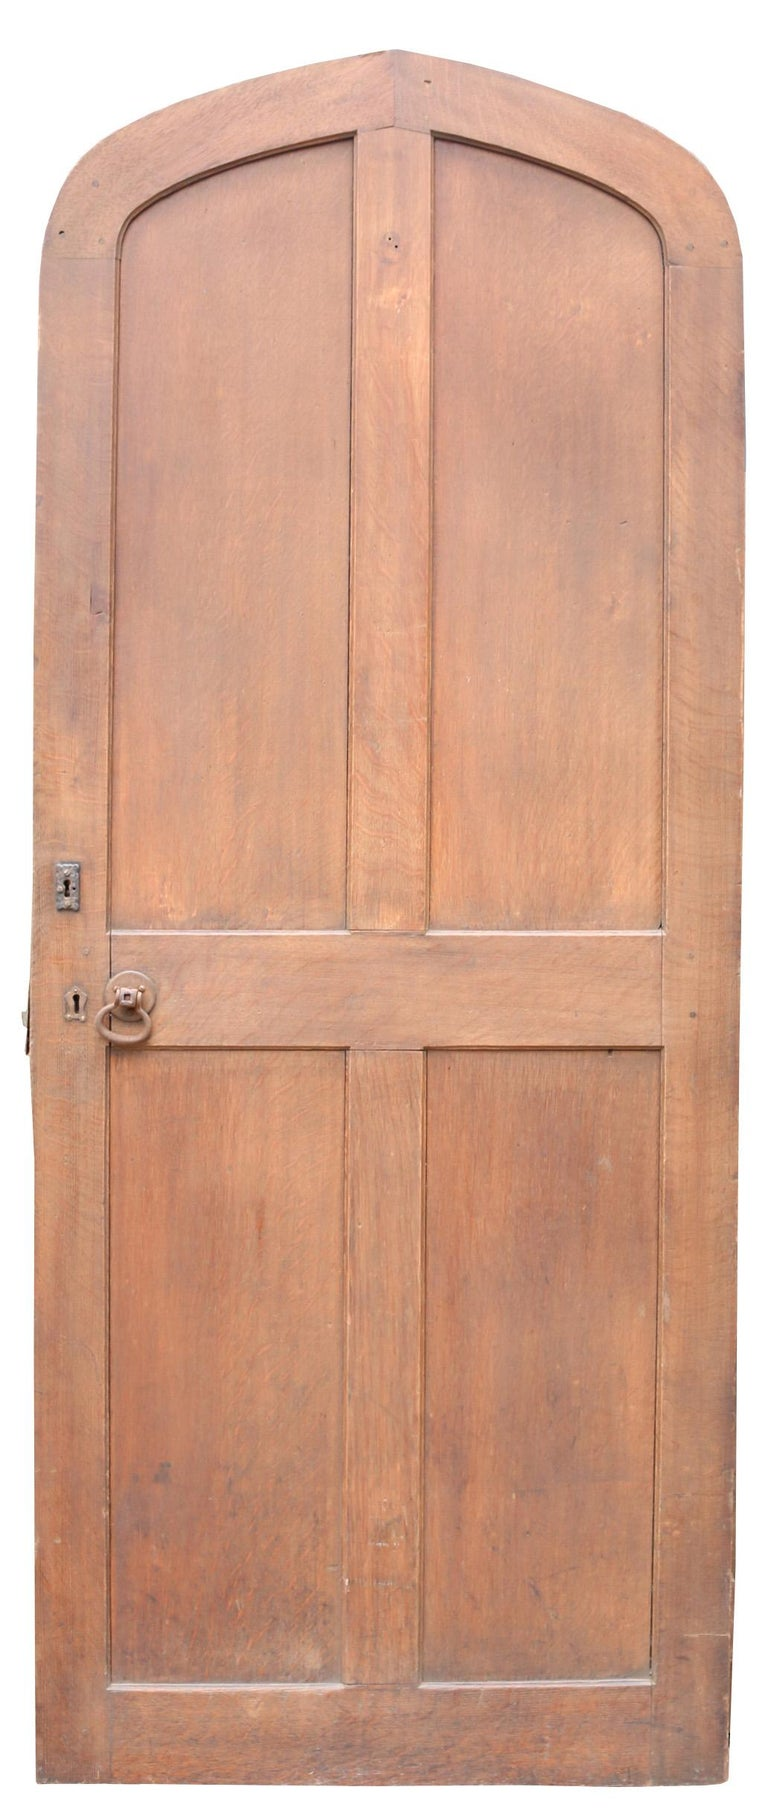 Can be used as an interior or exterior door.  There are some knocks and abrasions, normal for doors of this age.  Height 212 cm  Width 86 cm  Depth 4.5 cm  Weight 38 kg